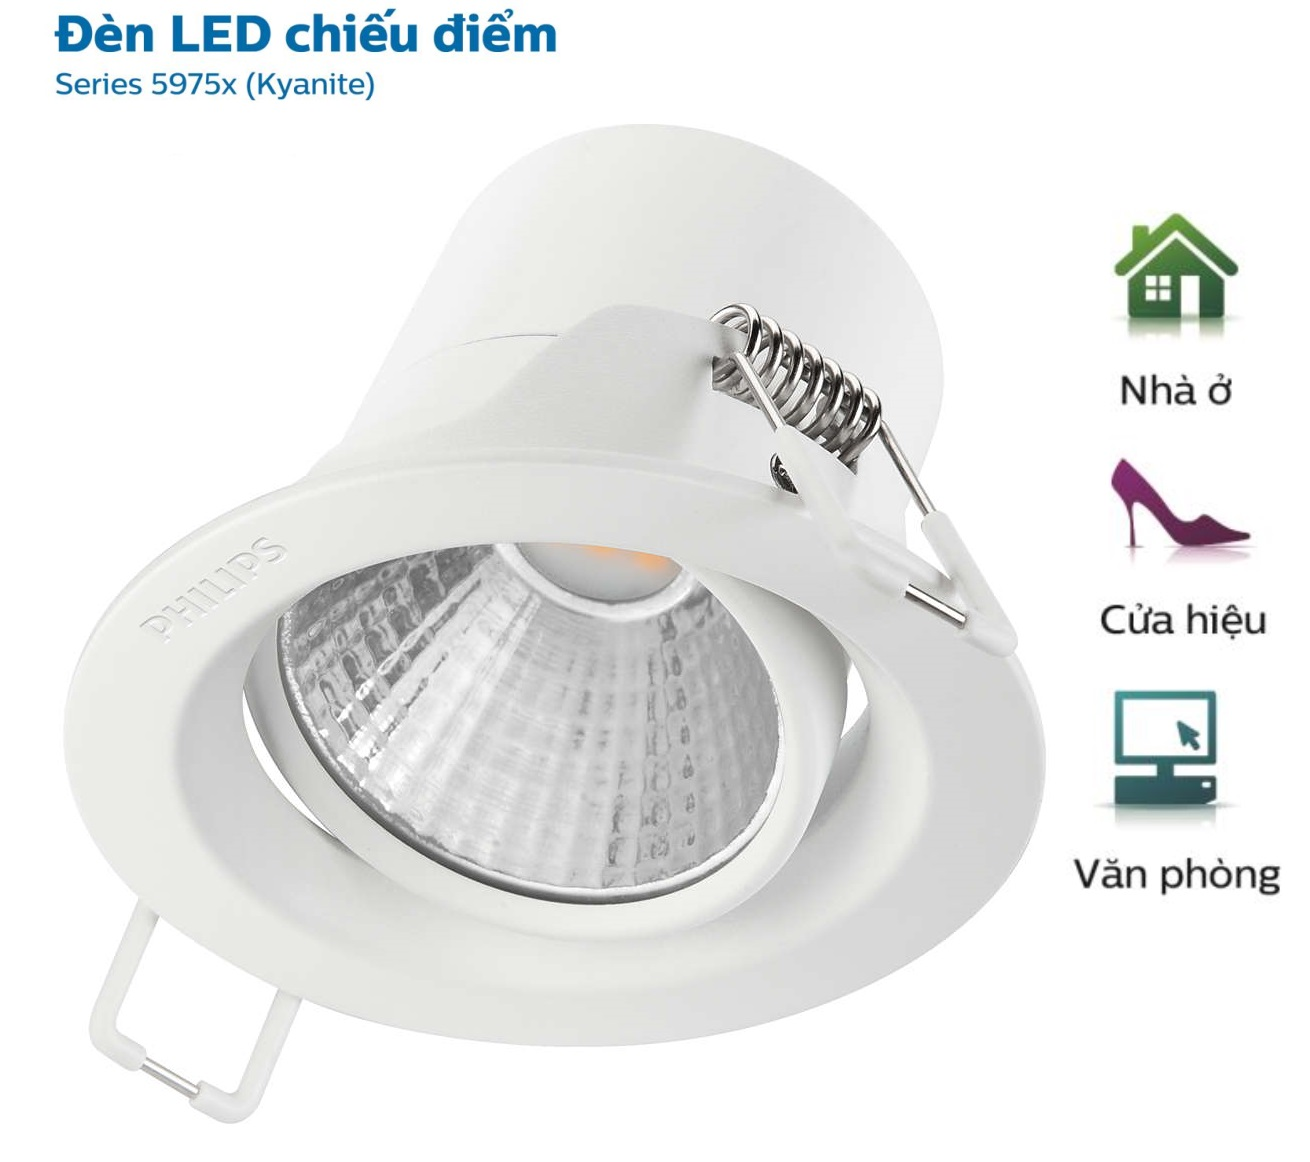 https://bongdenphilips.net/san-pham-bong-den-philips/den-downlight-philips/den-downlight-am-tran-led-philips-spot-light-47031-chieu-sang-diem-3w.html